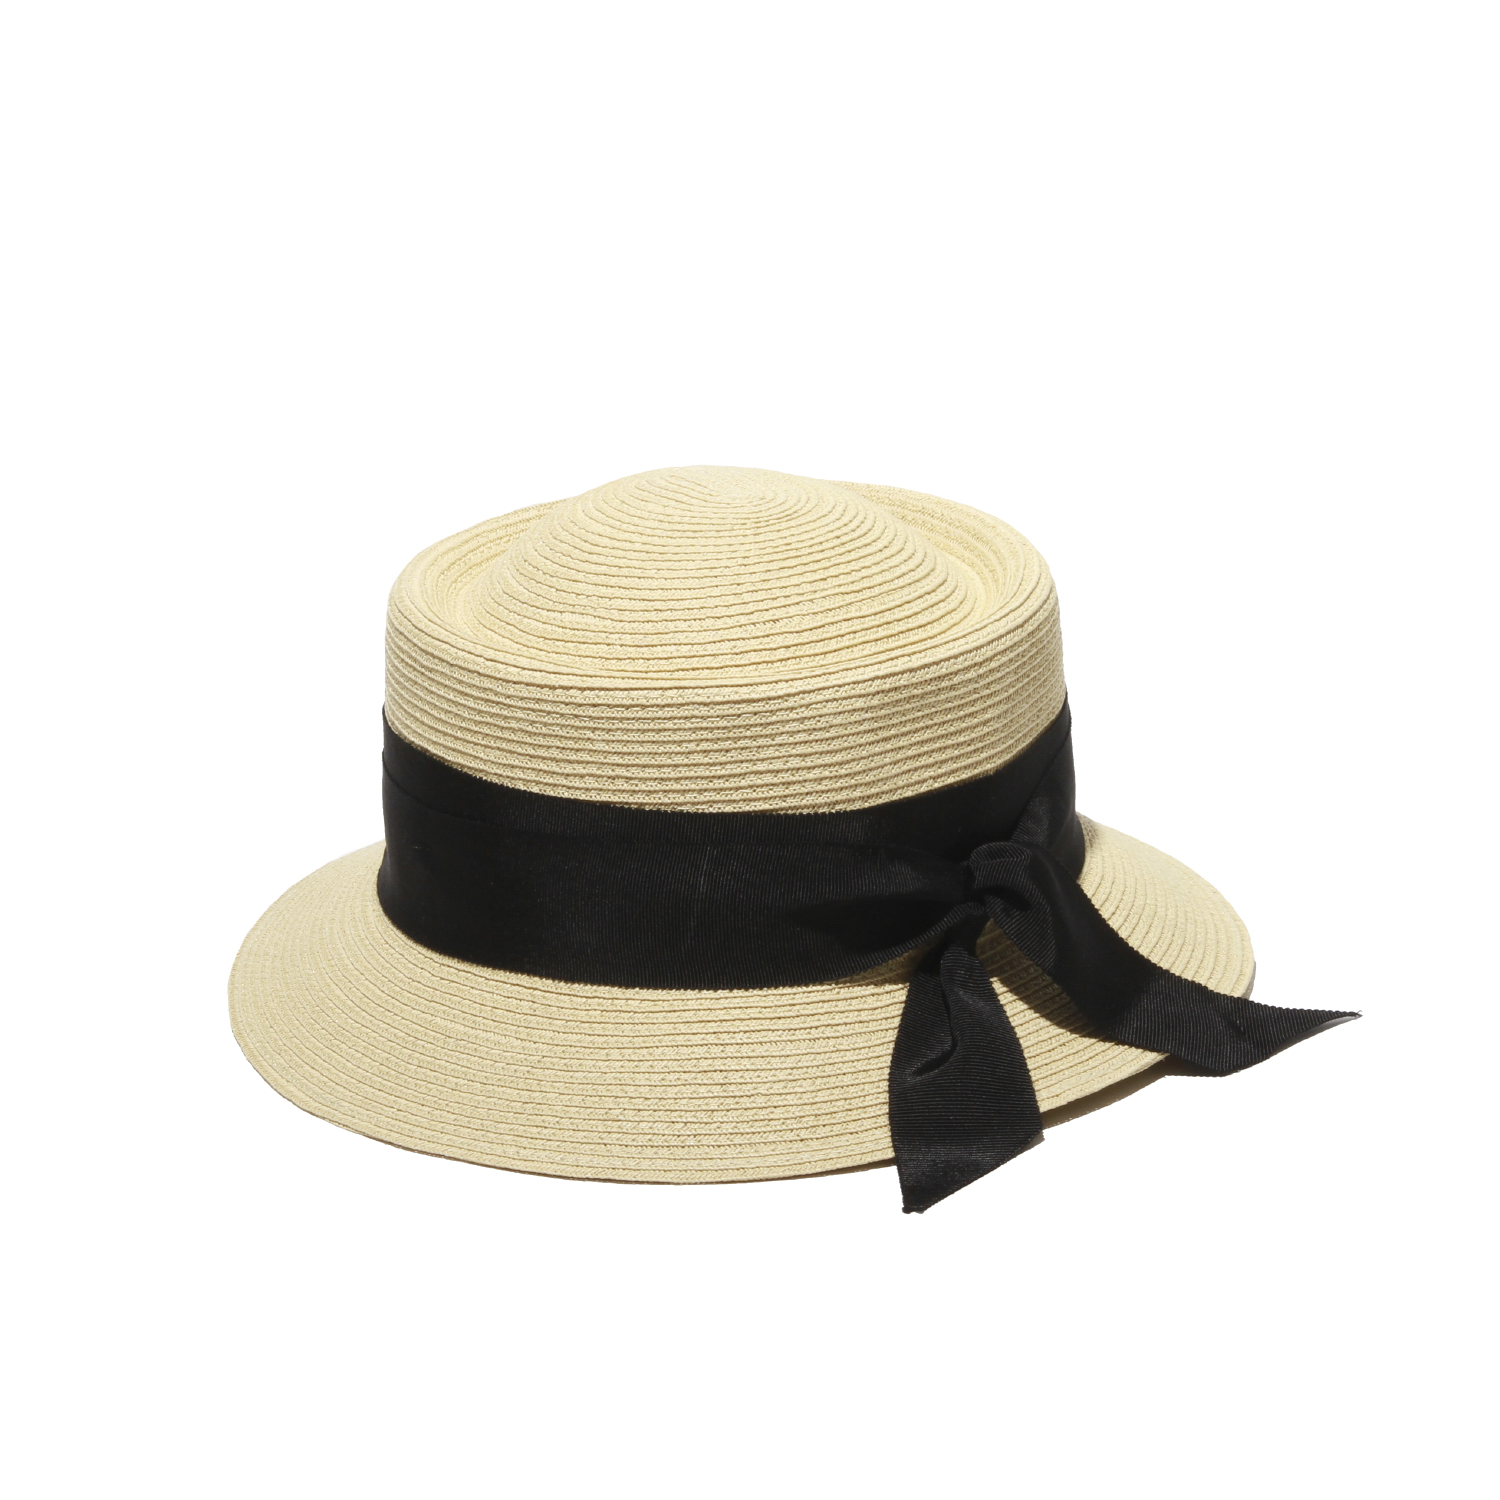 9a043604ac58e Olivia Straw HatNatural with Black Ribbon Straw Hat Vivienne Straw Sun  HatGottex by Physician Endorsed Stylish ...